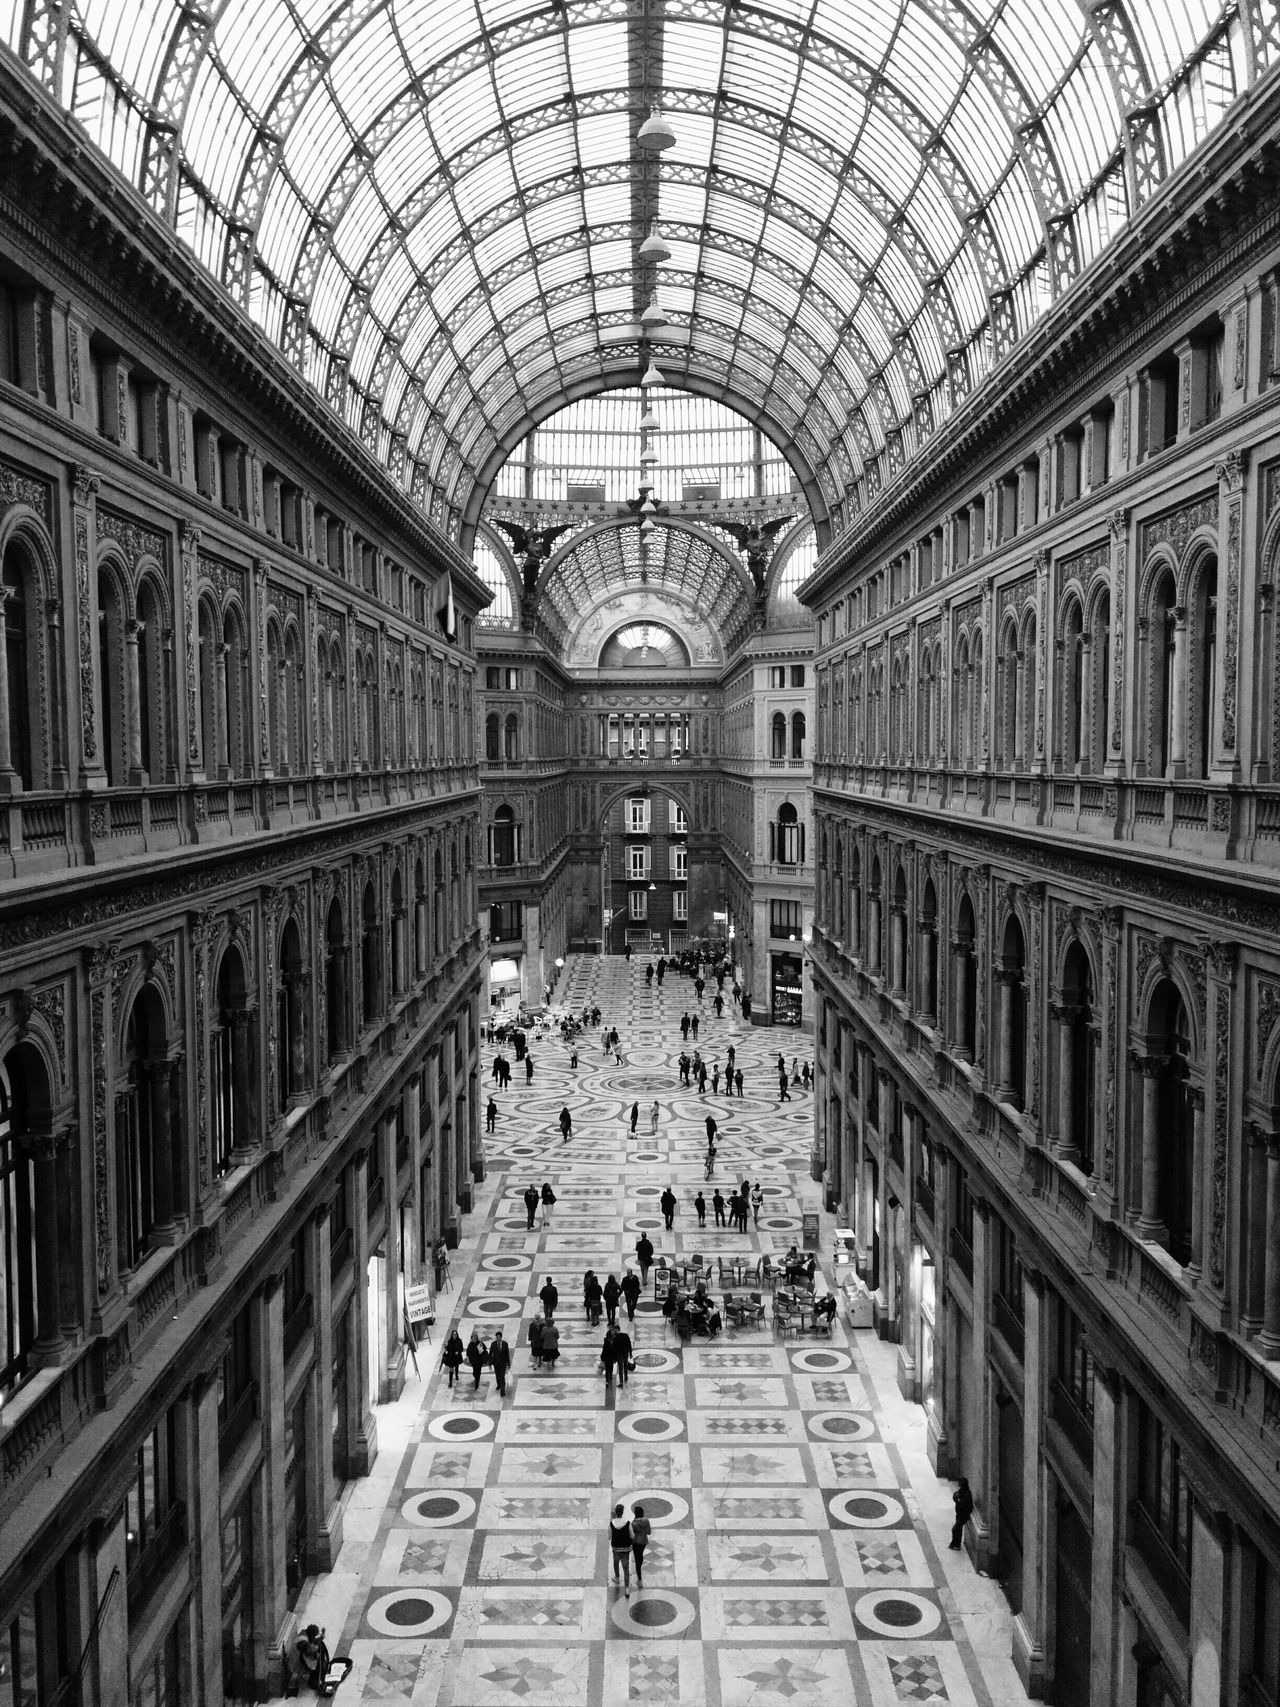 Beautiful stock photos of shopping, Arcade, Arch, Architecture, Built Structure